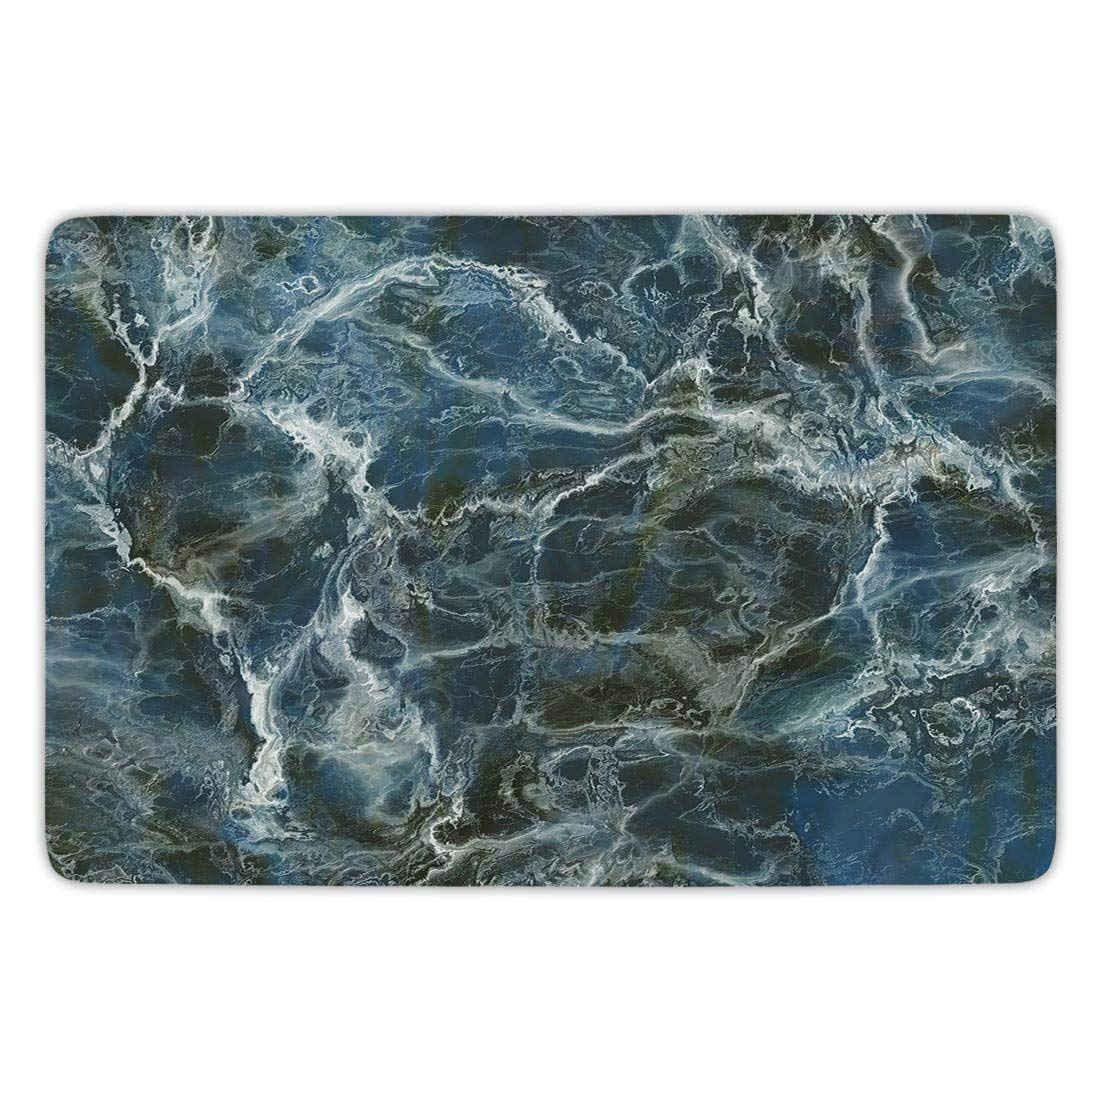 Bathroom Bath Rug Kitchen Floor Mat Carpet,Marble,Surface Motif with Large Formless Crack Lines and Granite Rock Abstract Design Decorative,Slate Blue Grey,Flannel Microfiber Non-slip Soft Absorbent